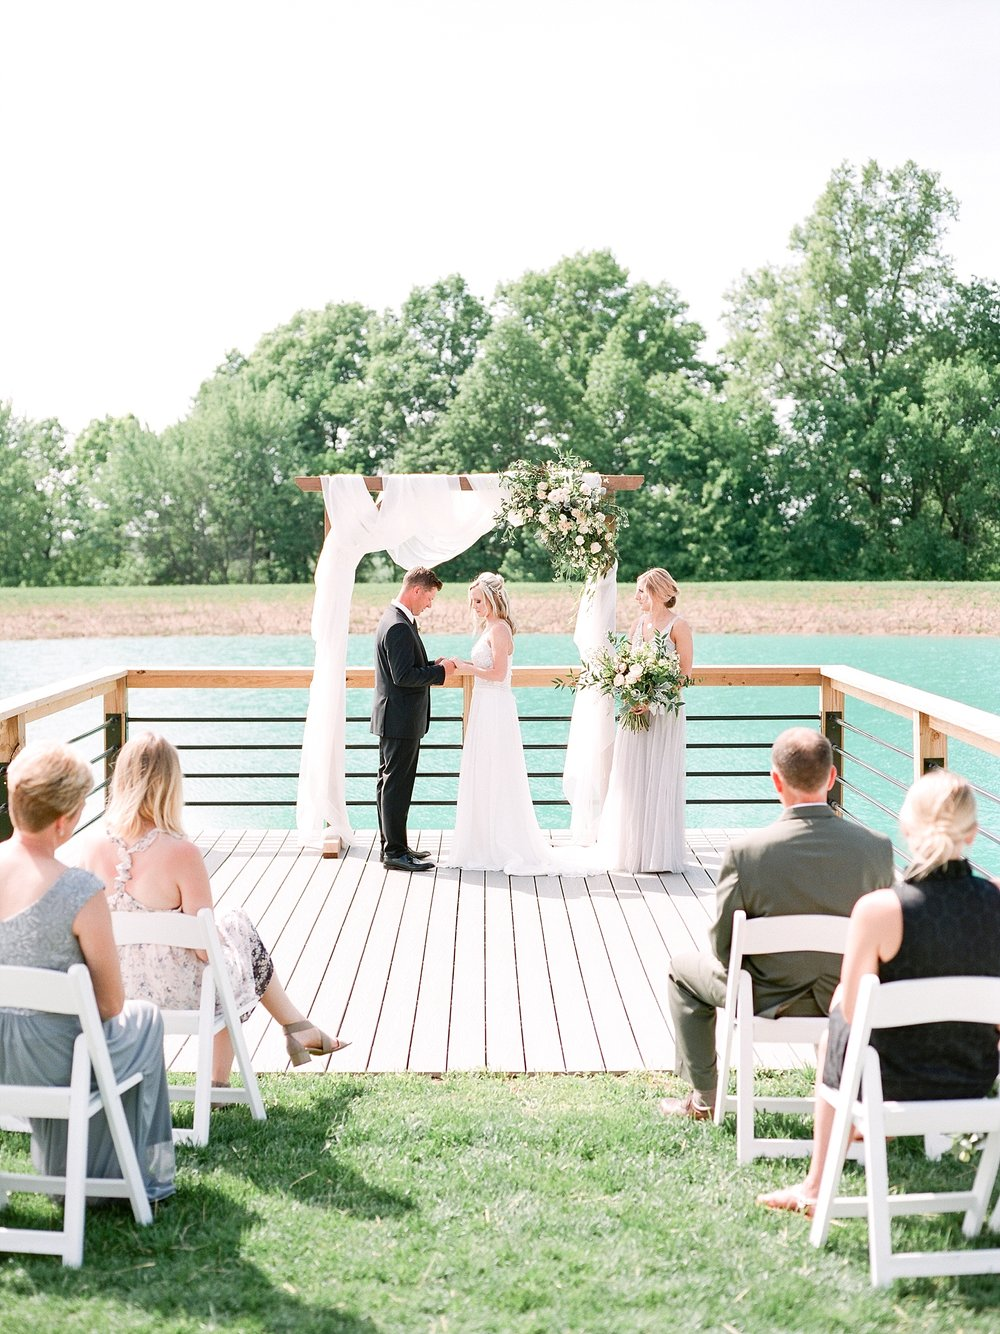 Textural Organic Wedding in All White Venue by Kelsi Kliethermes Wedding Photographer - Missouri, Midwest, and Destinations_0070.jpg